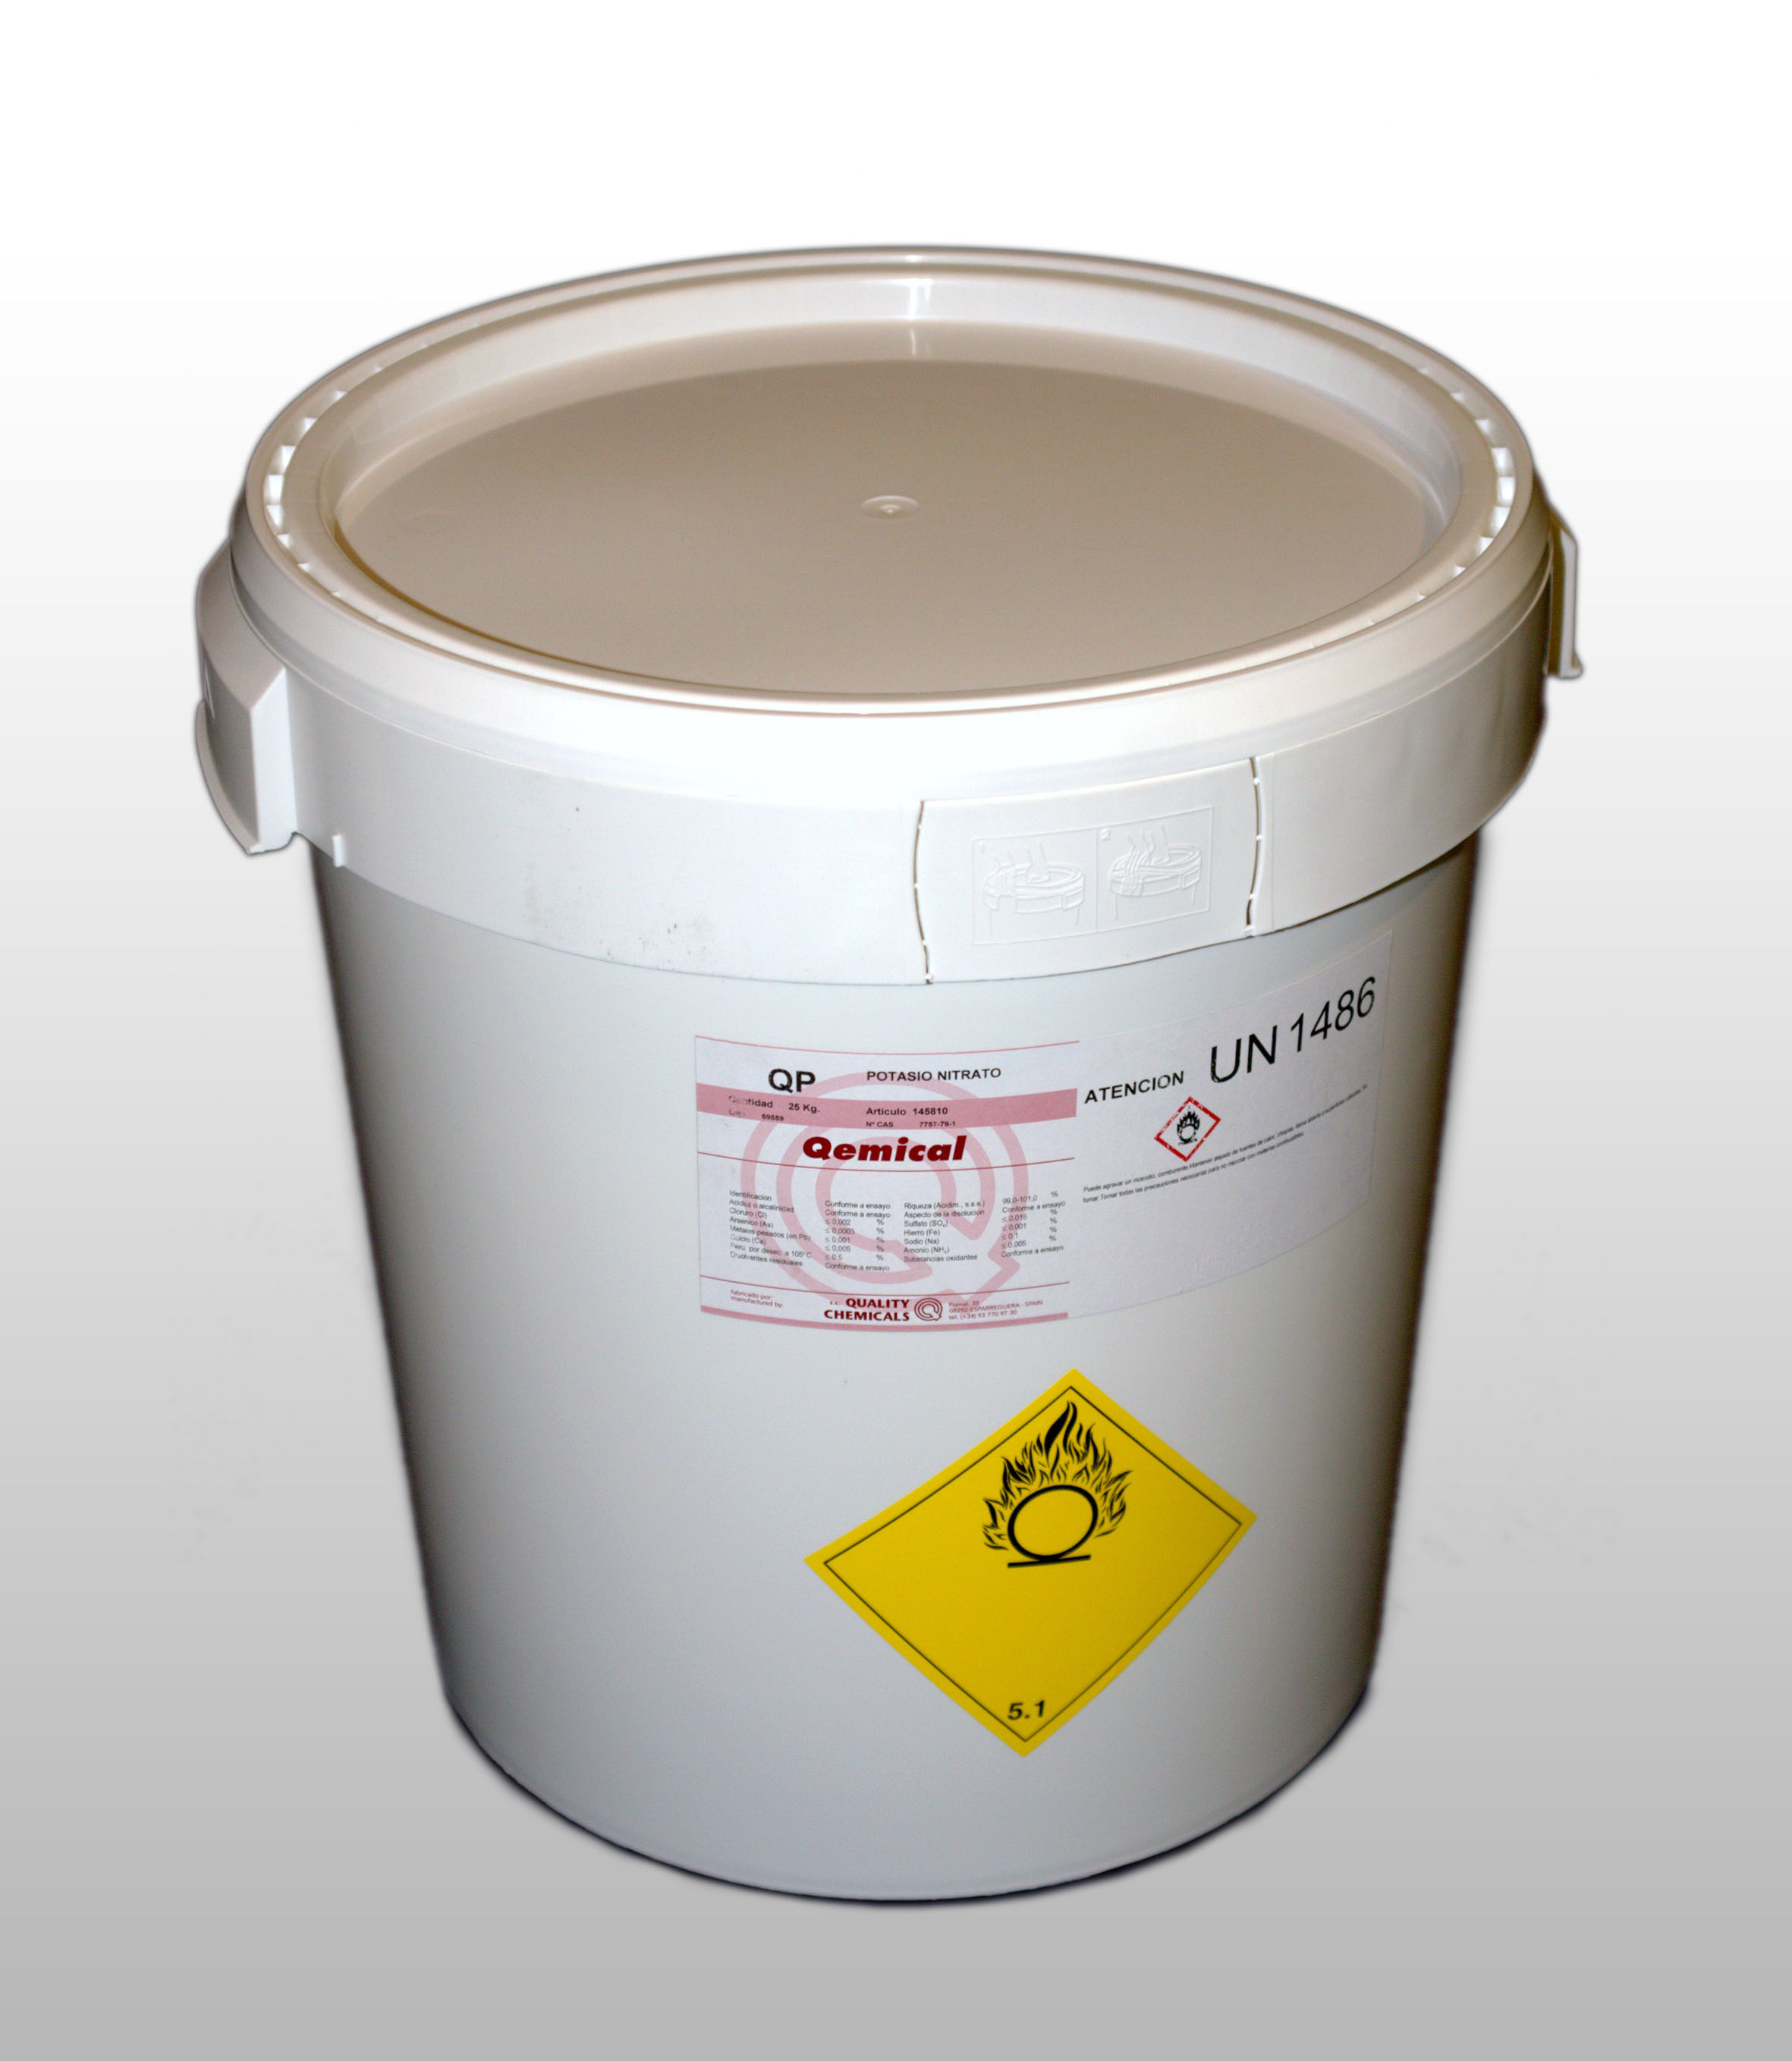 PLASTIC DRUM 30 L (FOR SOLIDS), 2 internal bags, closed to vaccum